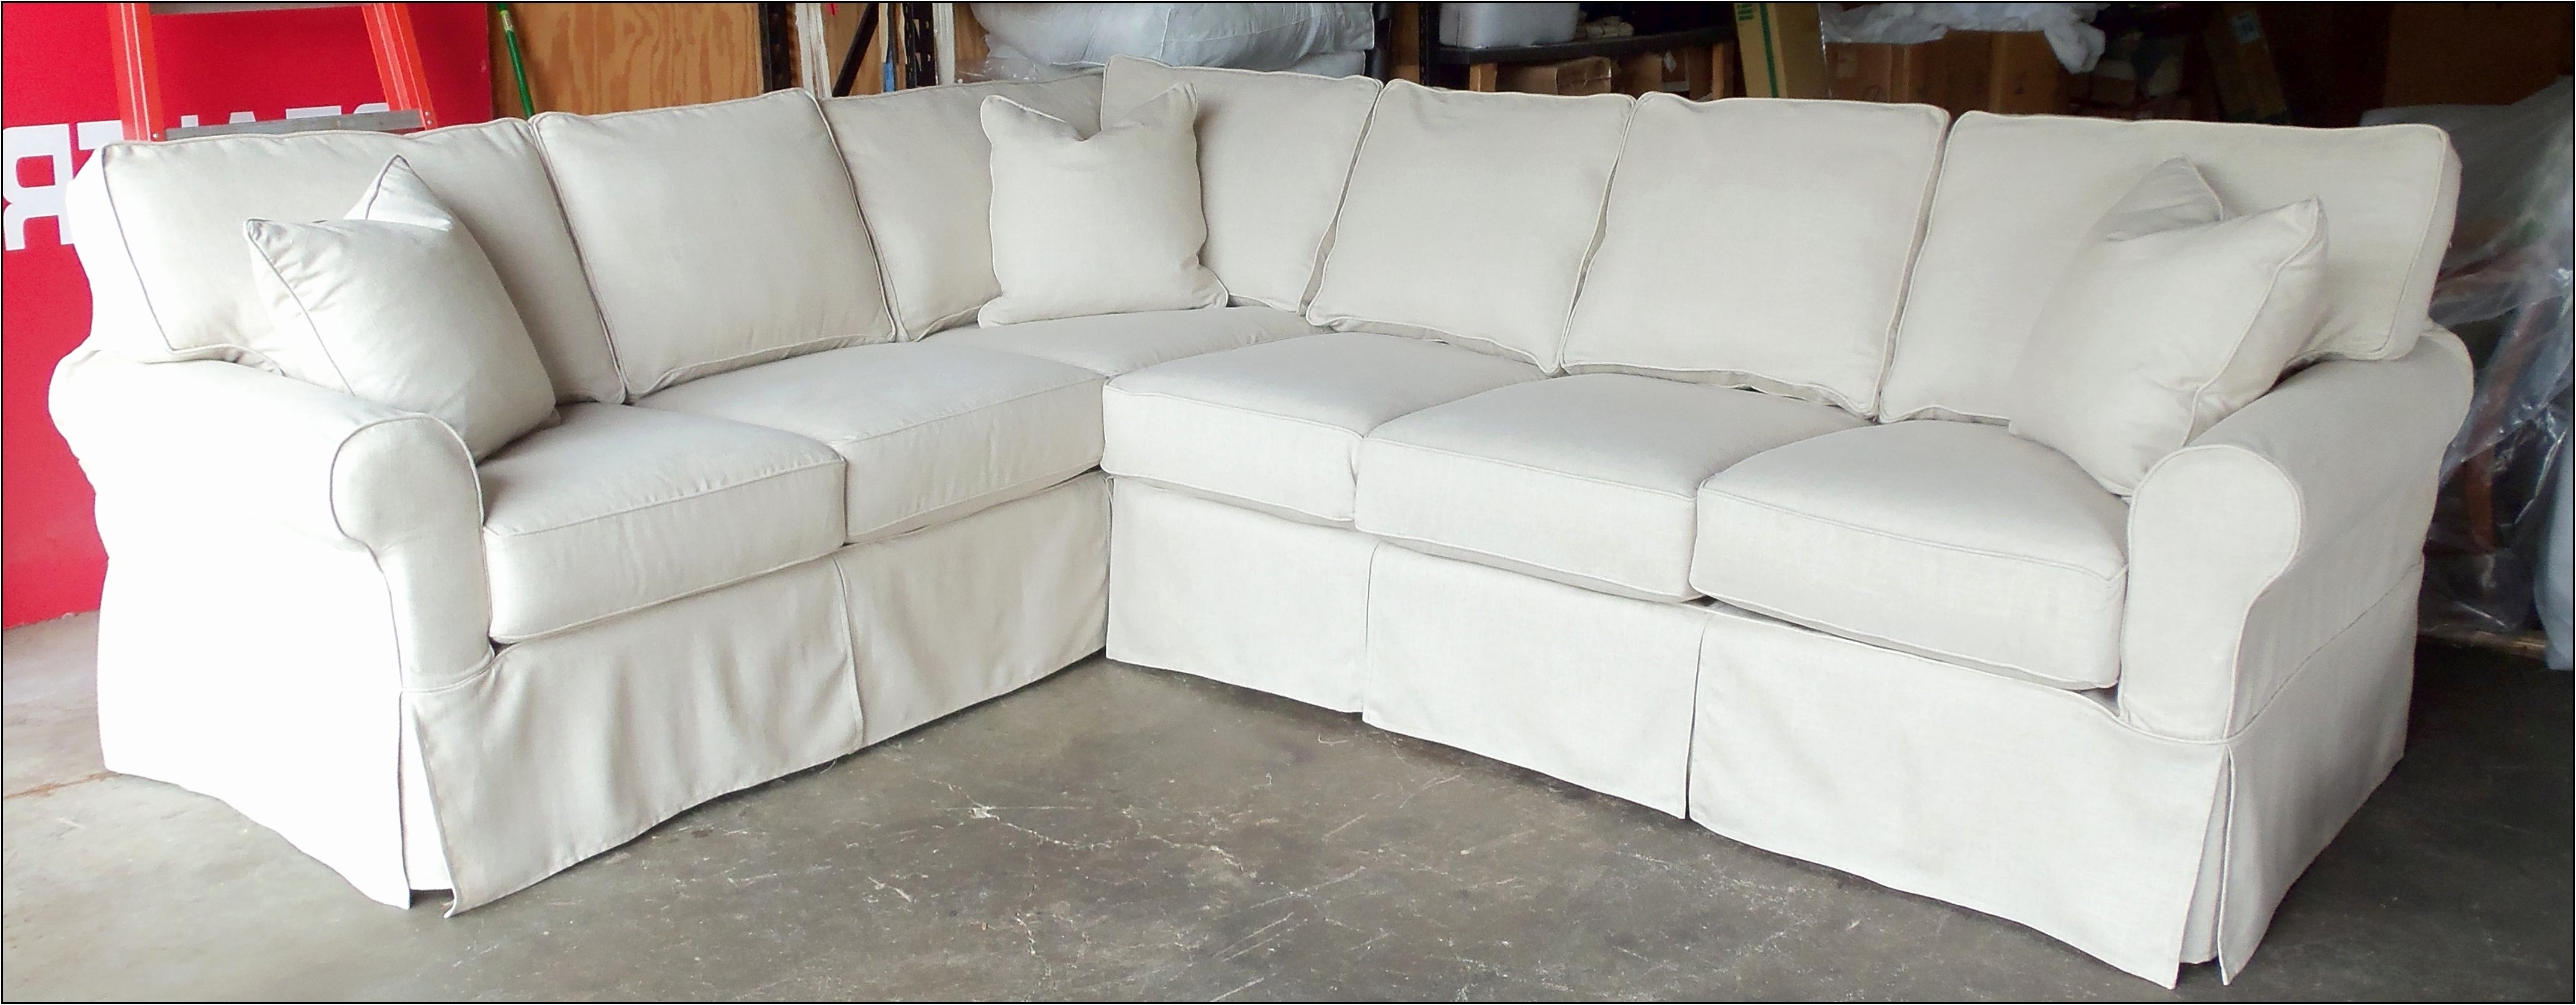 Current Sectional Sofas At Birmingham Al Regarding Best Slipcovers For Clayton Marcus Sofa 2018 – Couches And Sofas Ideas (View 4 of 15)